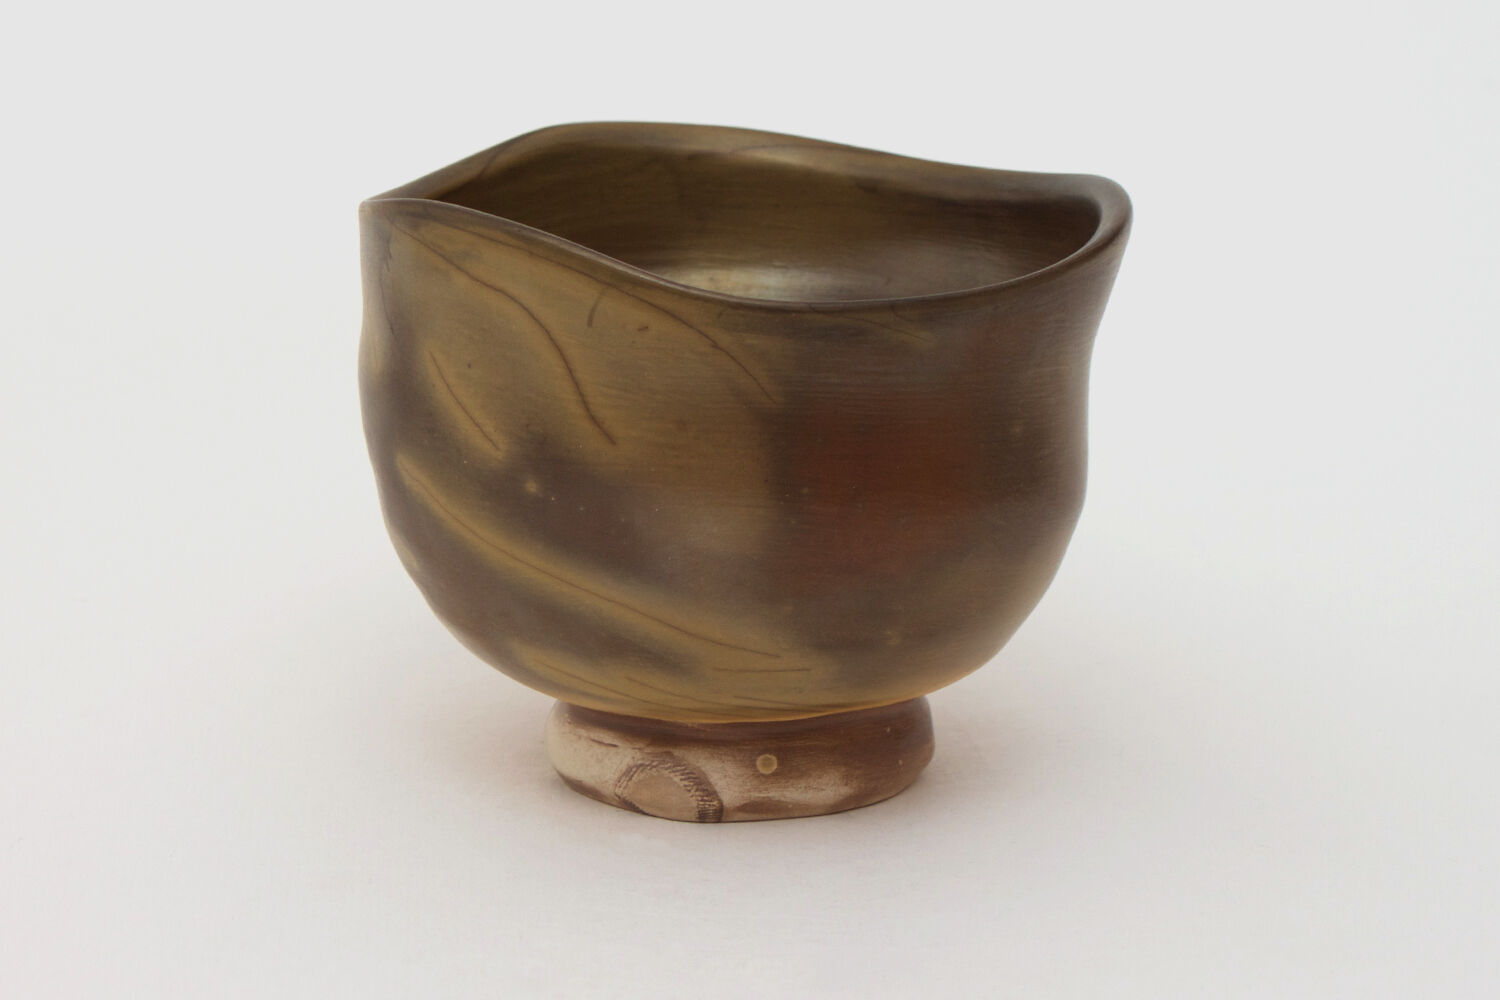 Dalloun Ceramic Tea Bowl 7